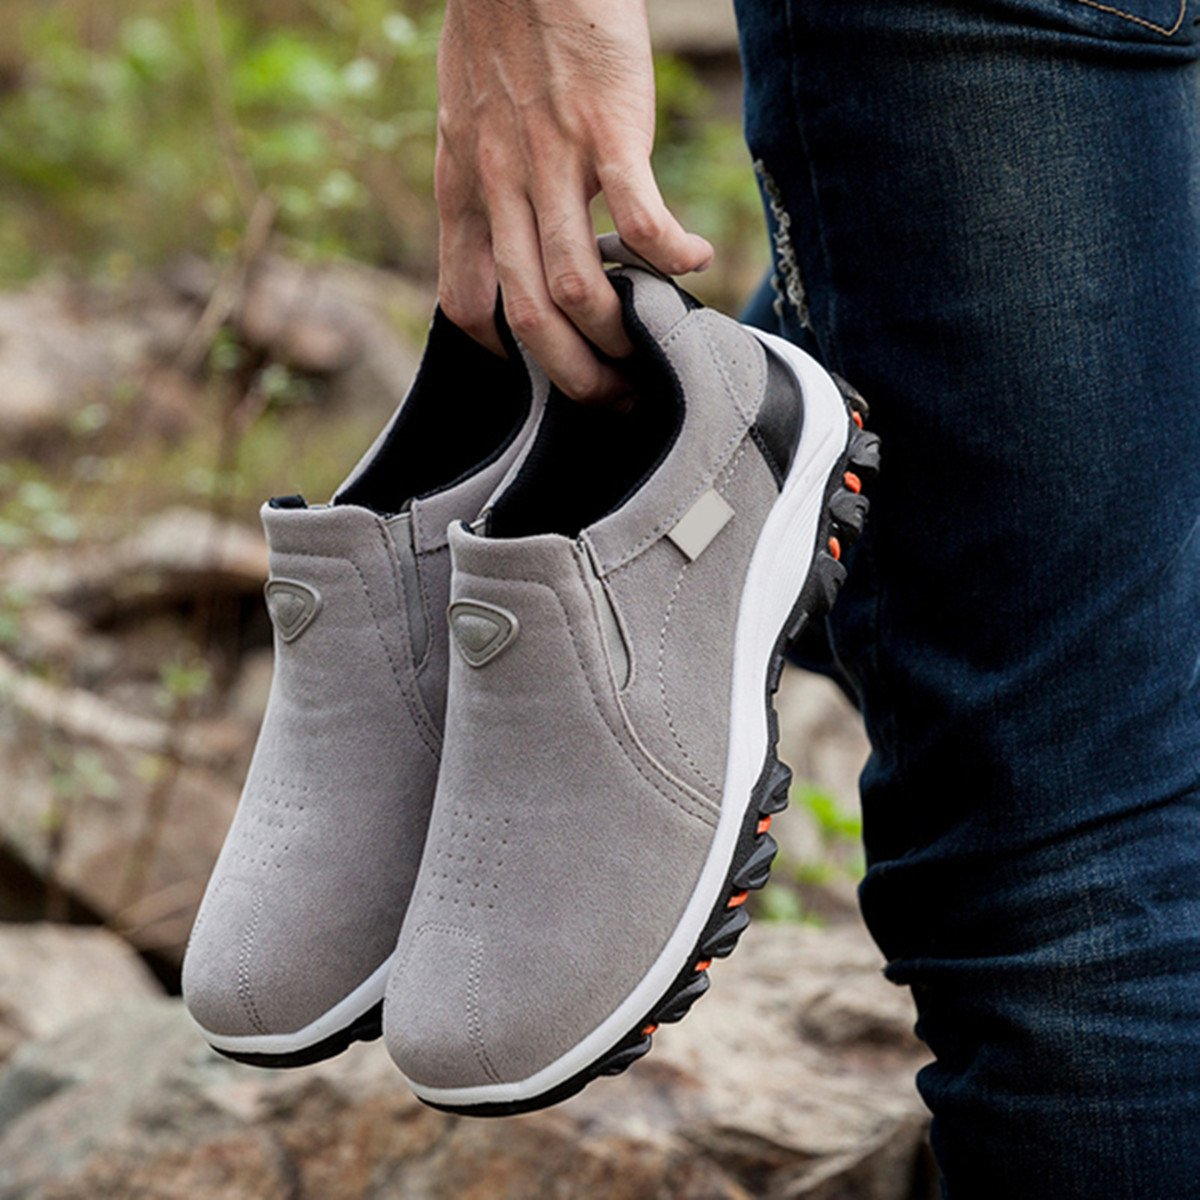 Gracosy Suede Hiking Shoes, Men's Suede Fashion Sneaker, Outdoor Athletic Slip On Shoes, Casual Shoes - Breathable, Slip-Resistant Grey 44 EU